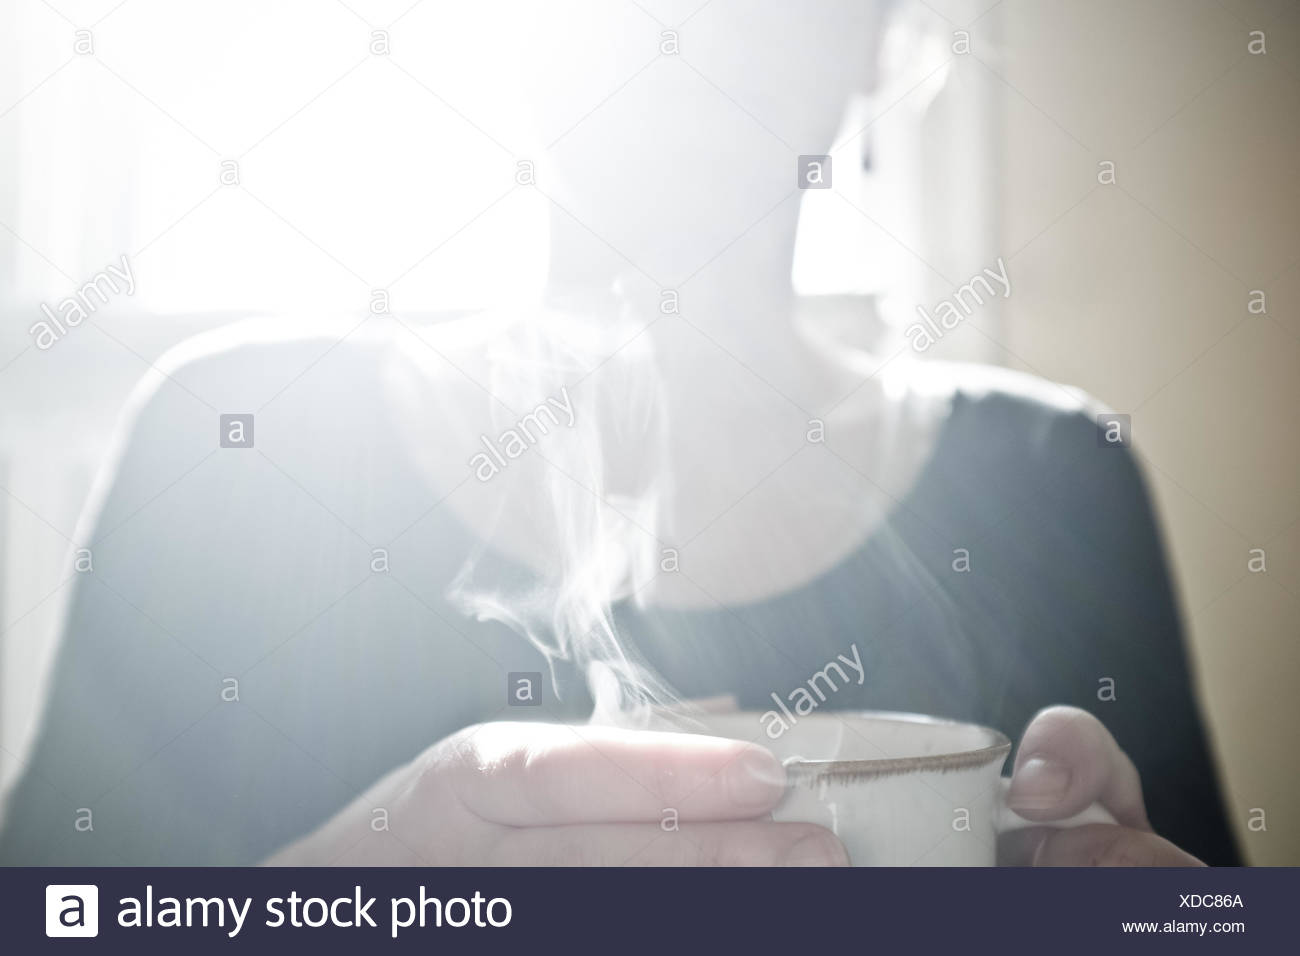 USA, Wyoming, View of woman drinking hot tea or coffee in cafe - Stock Image